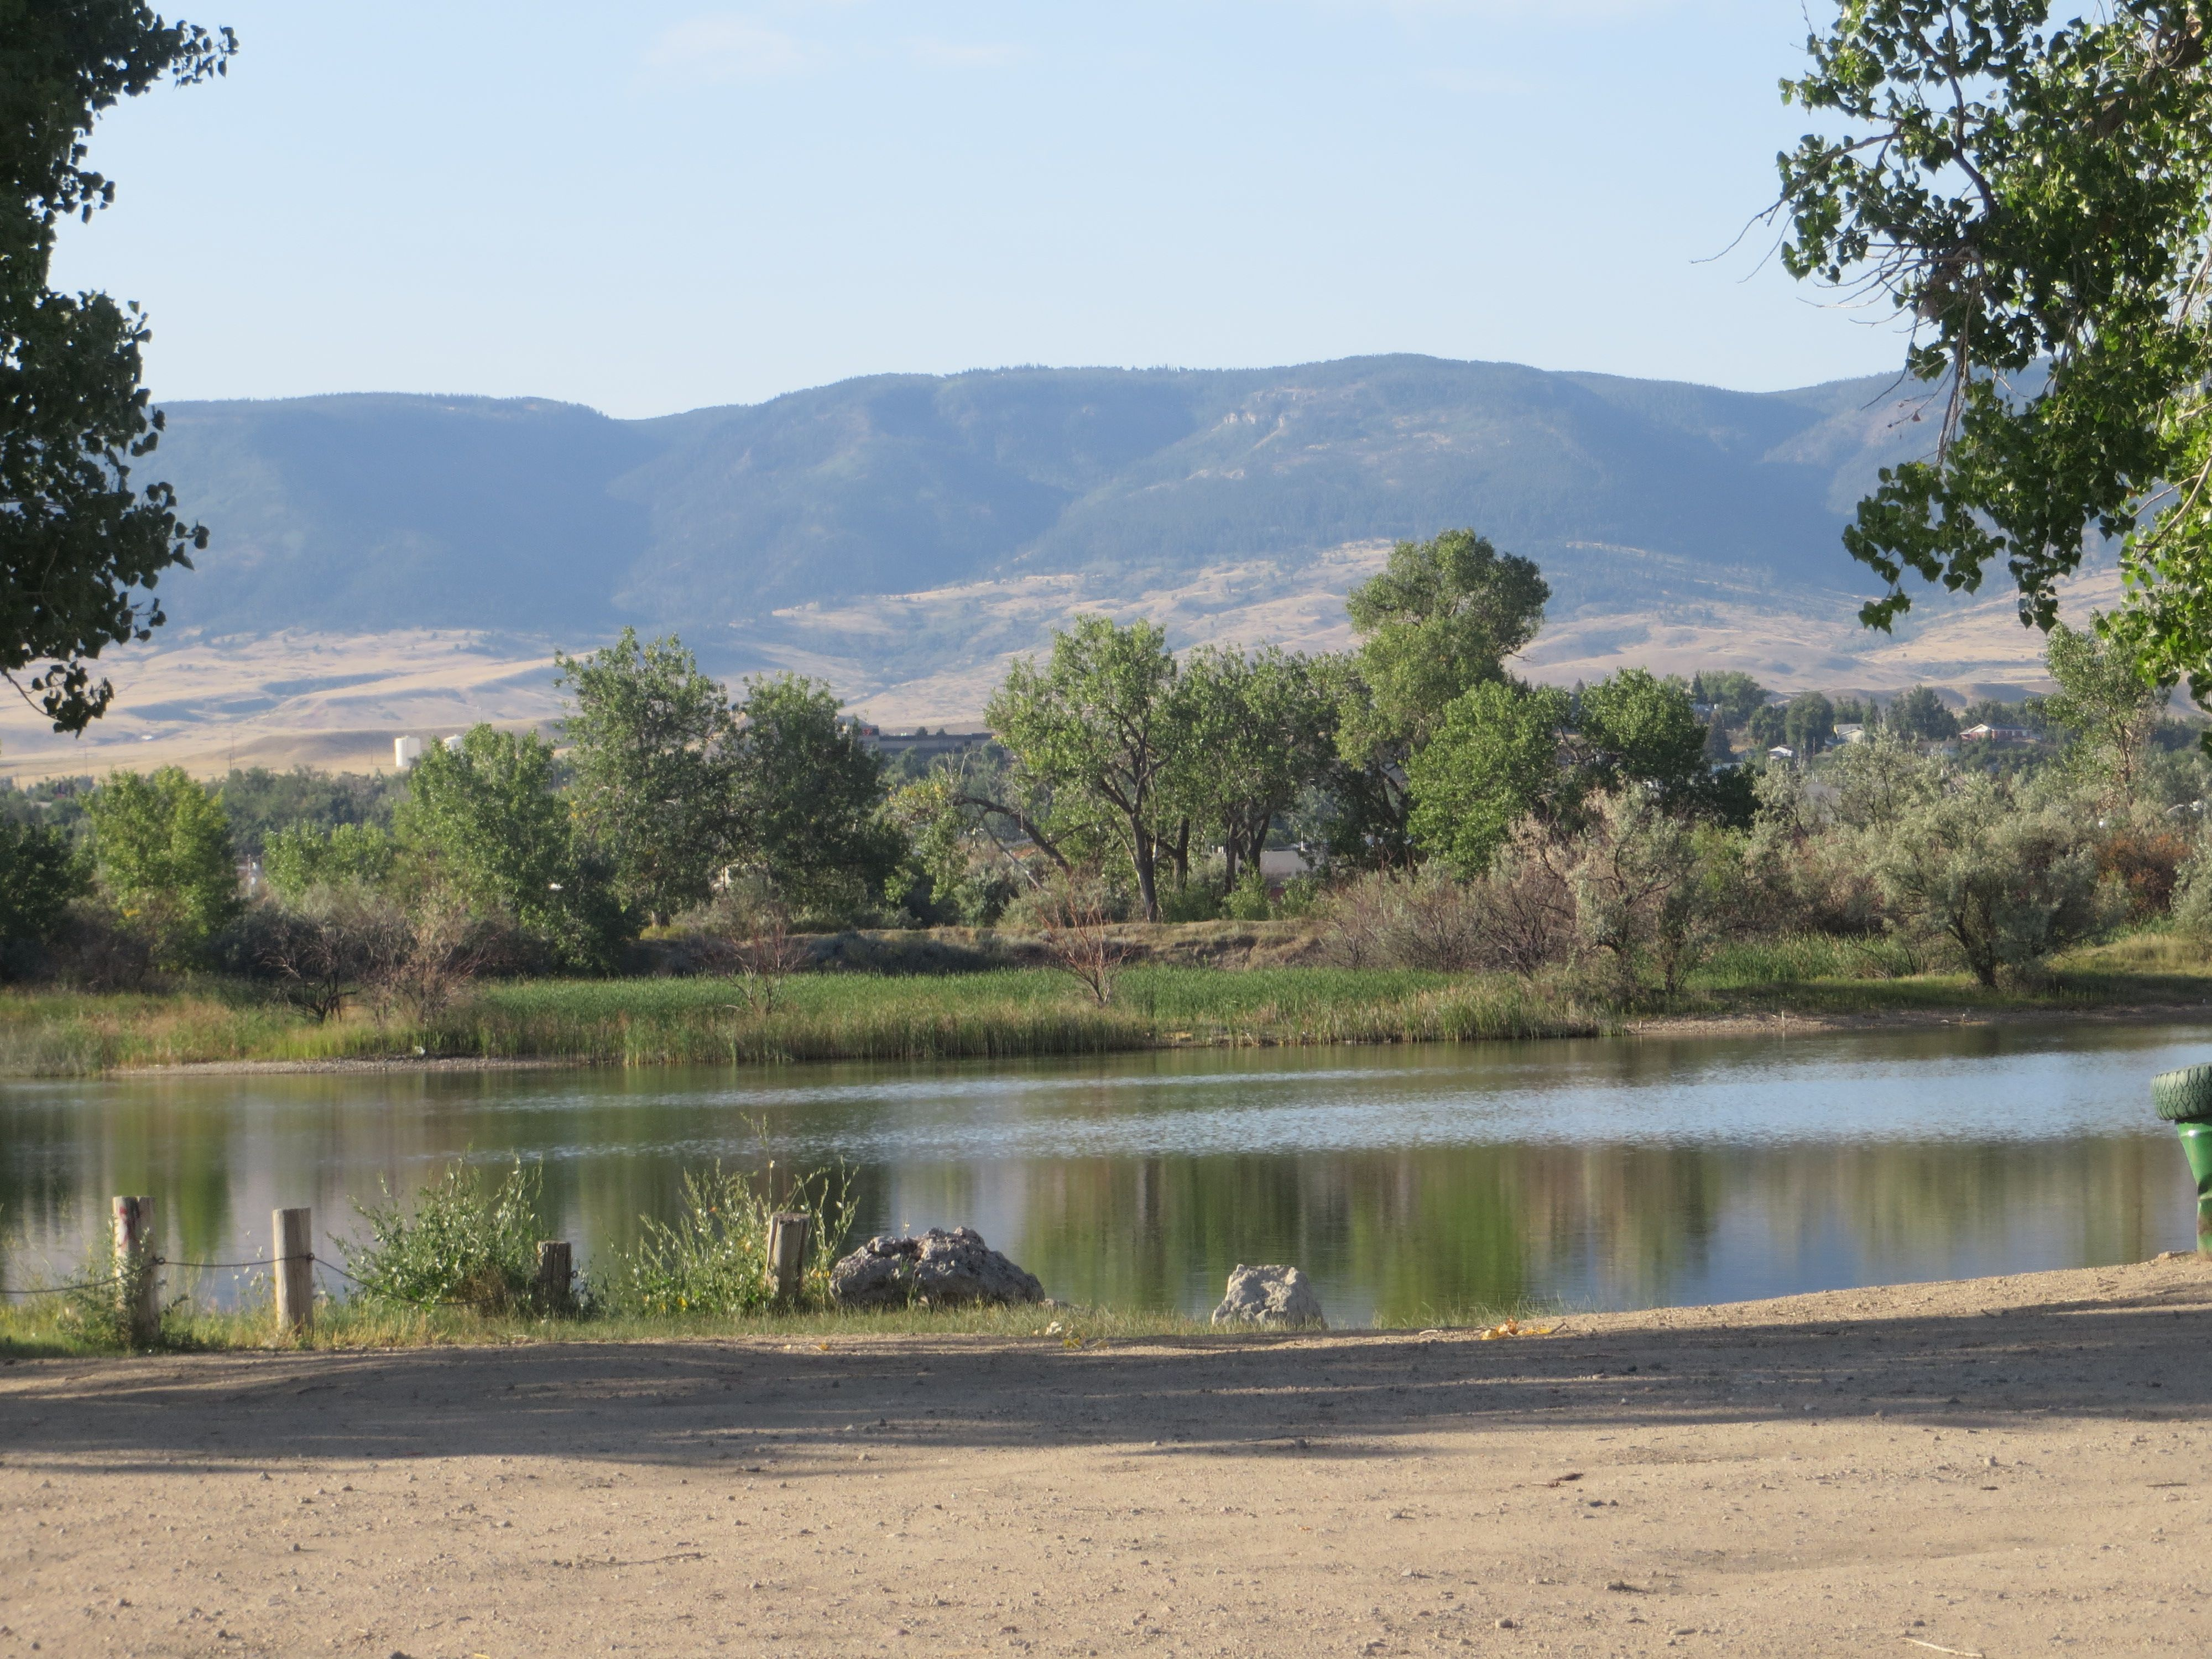 This Image Captures The Pond Near The Eastside Off Leash Dog Park As Well As Casper Mountain In The Background Casper Wyoming Casper Wyoming Wyoming Dog Park